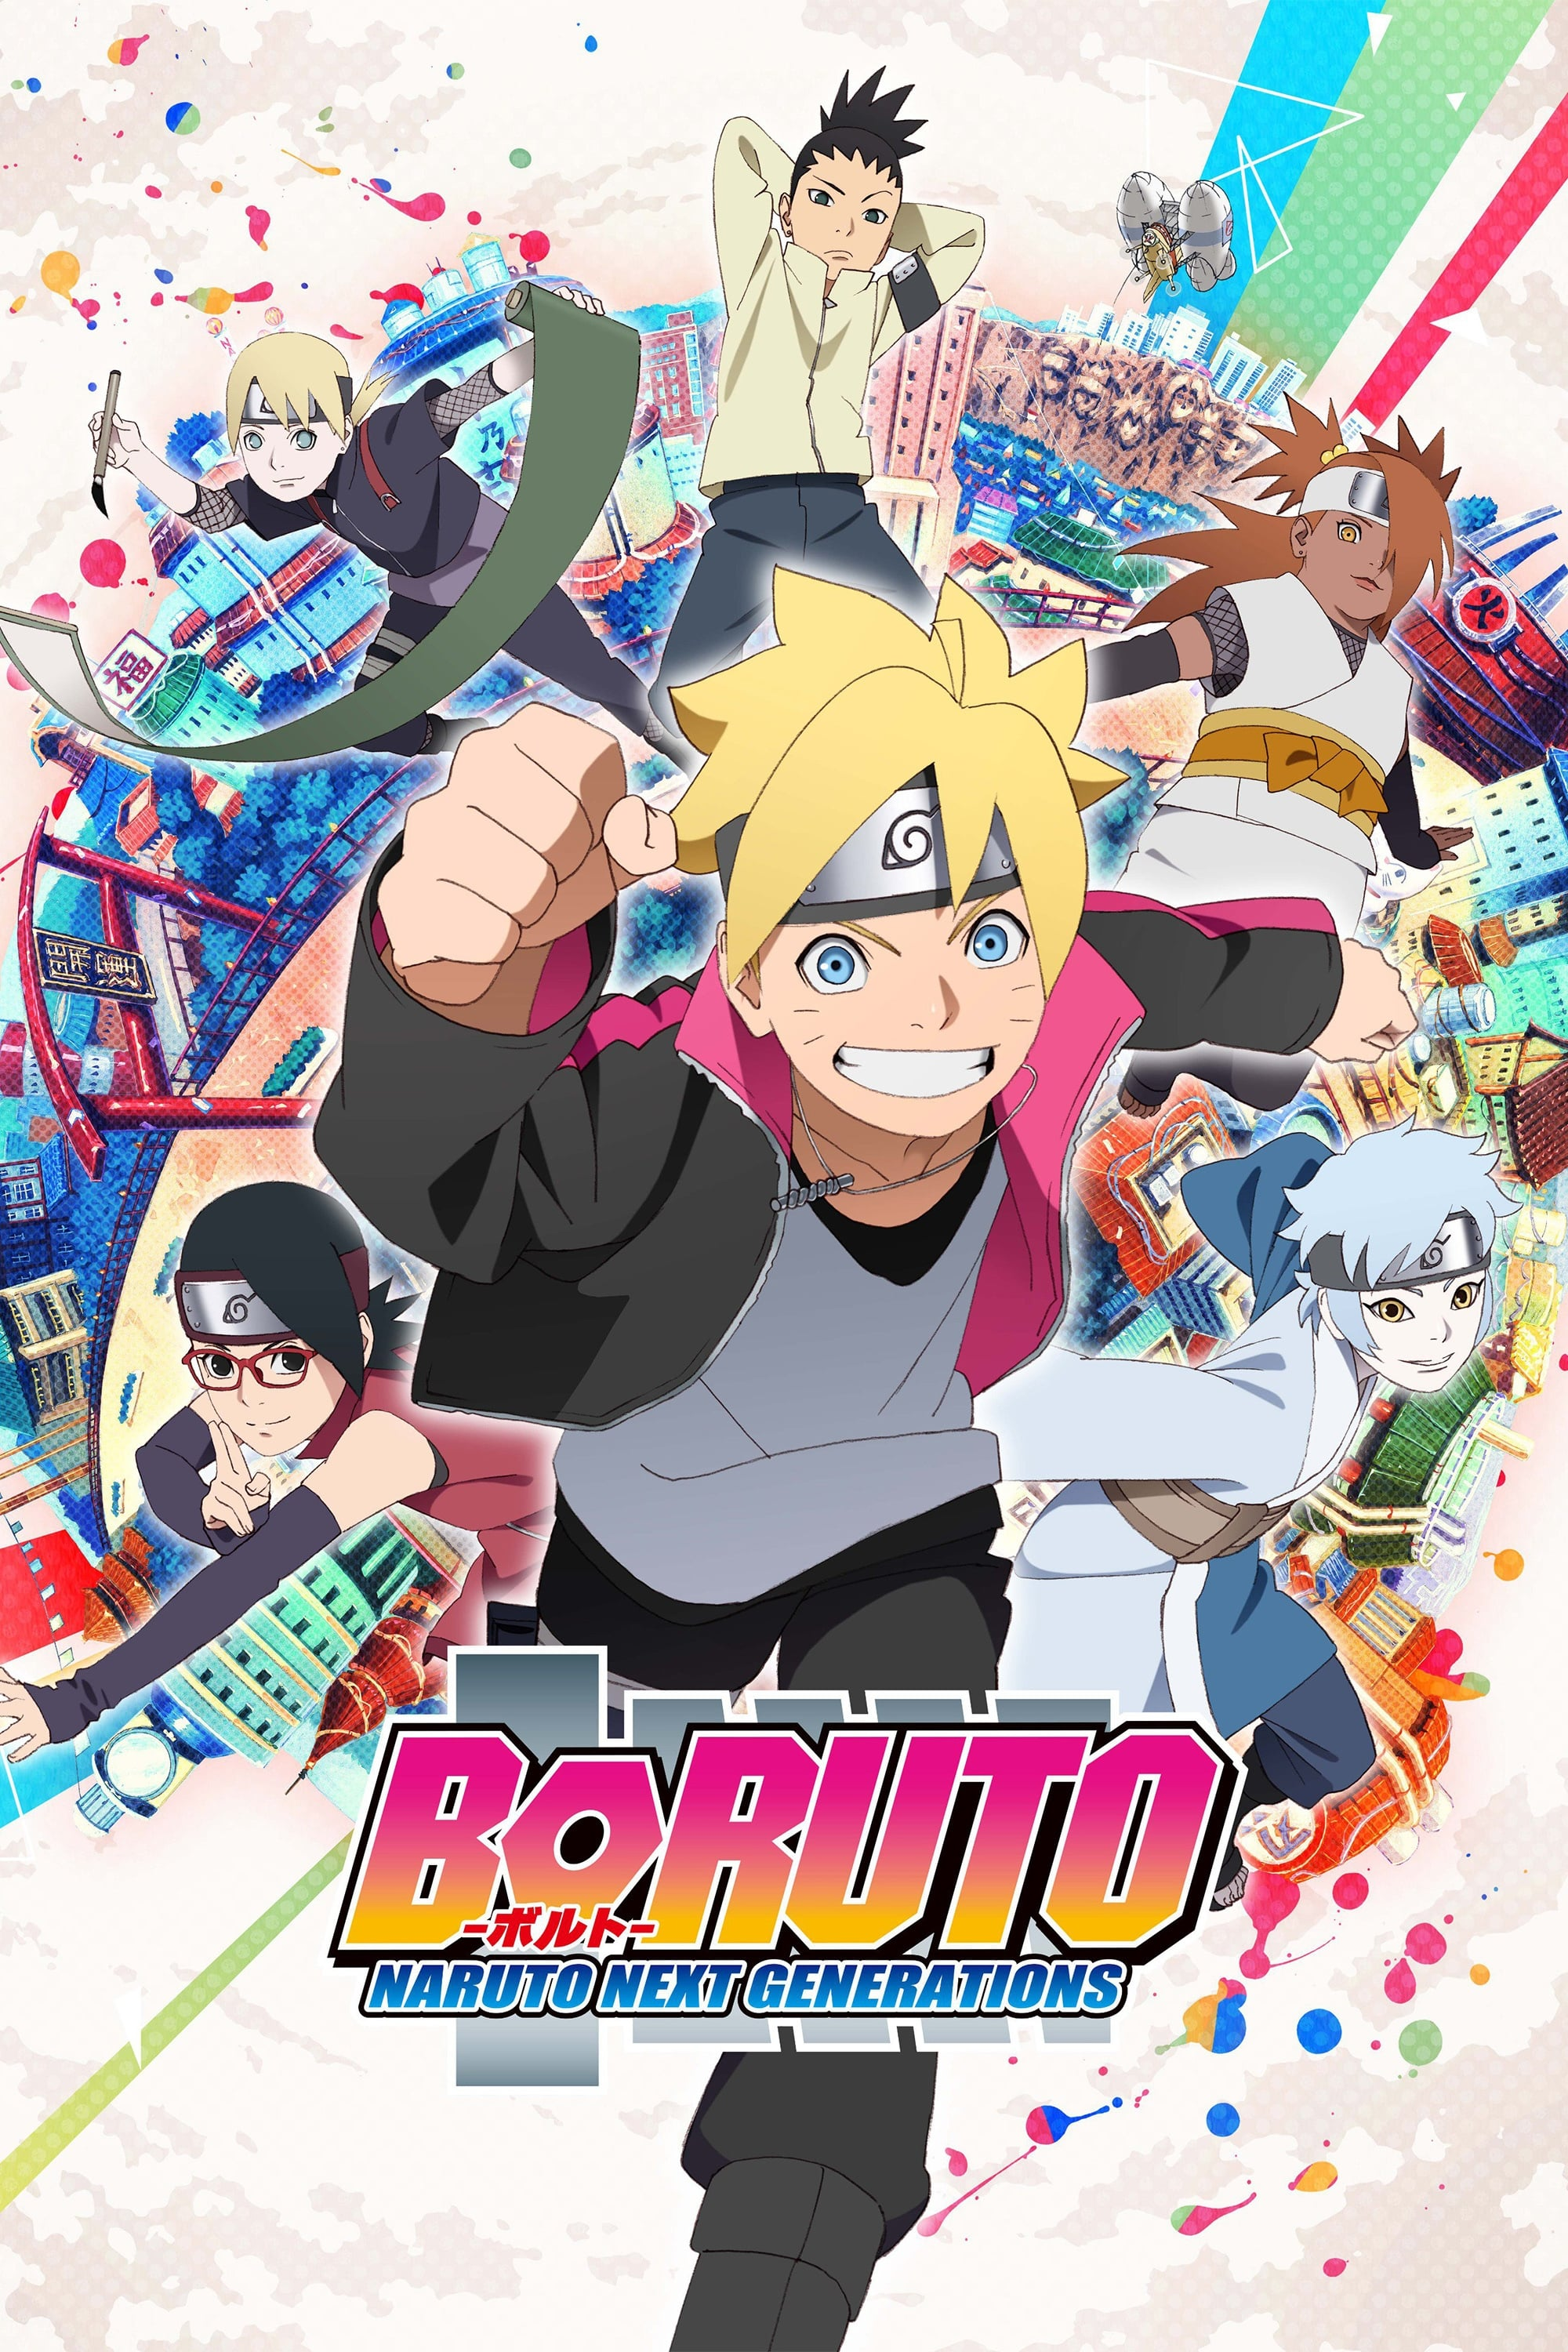 image for Boruto: Naruto Next Generations